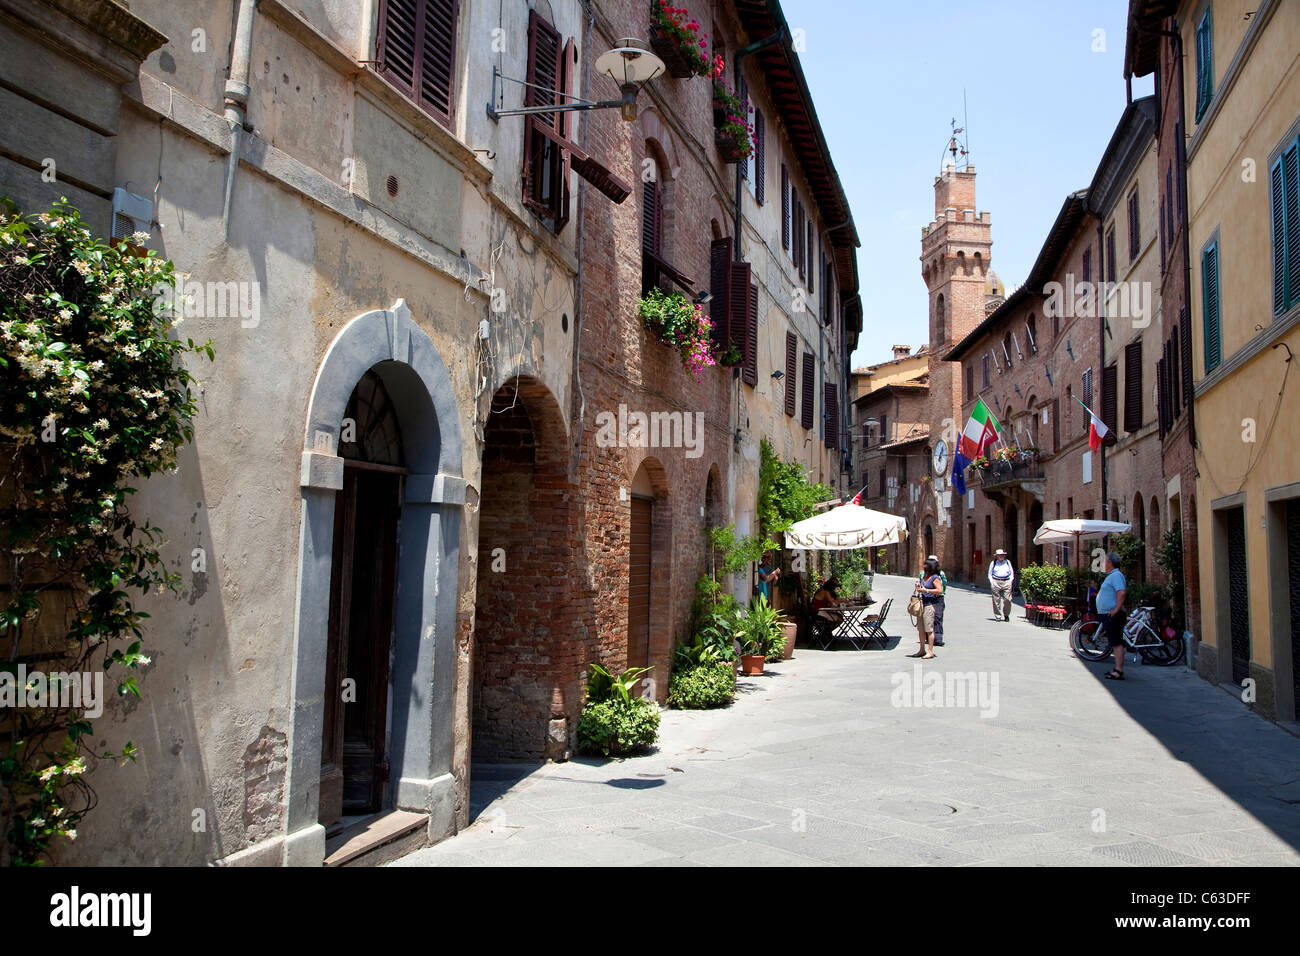 The walled medieval town of Buonconvento, Siena, Tuscany, Italy, Europe Stock Photo